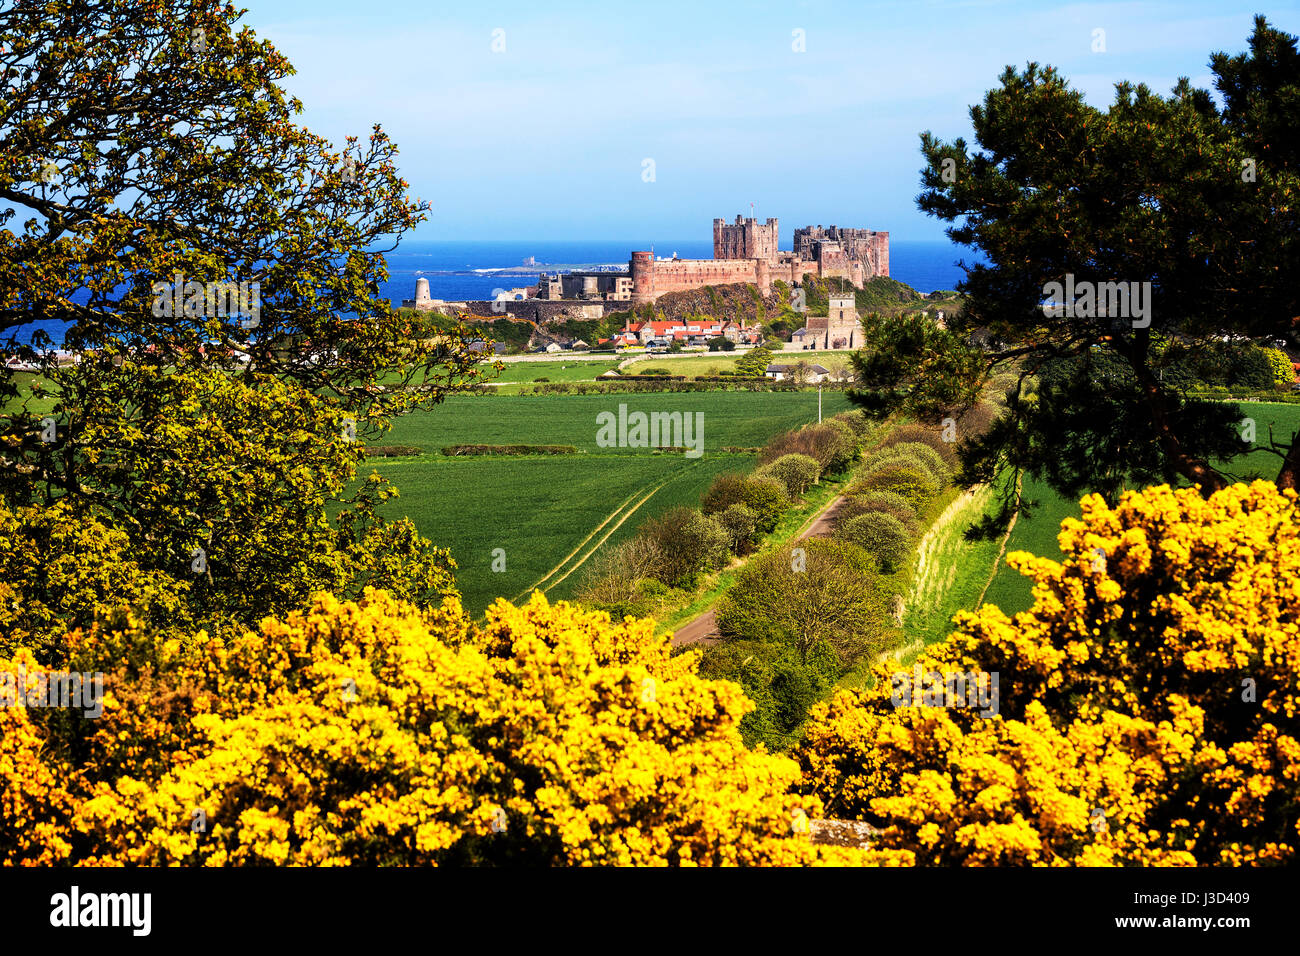 A Photograph of Bamburgh Castle in Northumberland taken during spring from the west of Bamburgh. - Stock Image